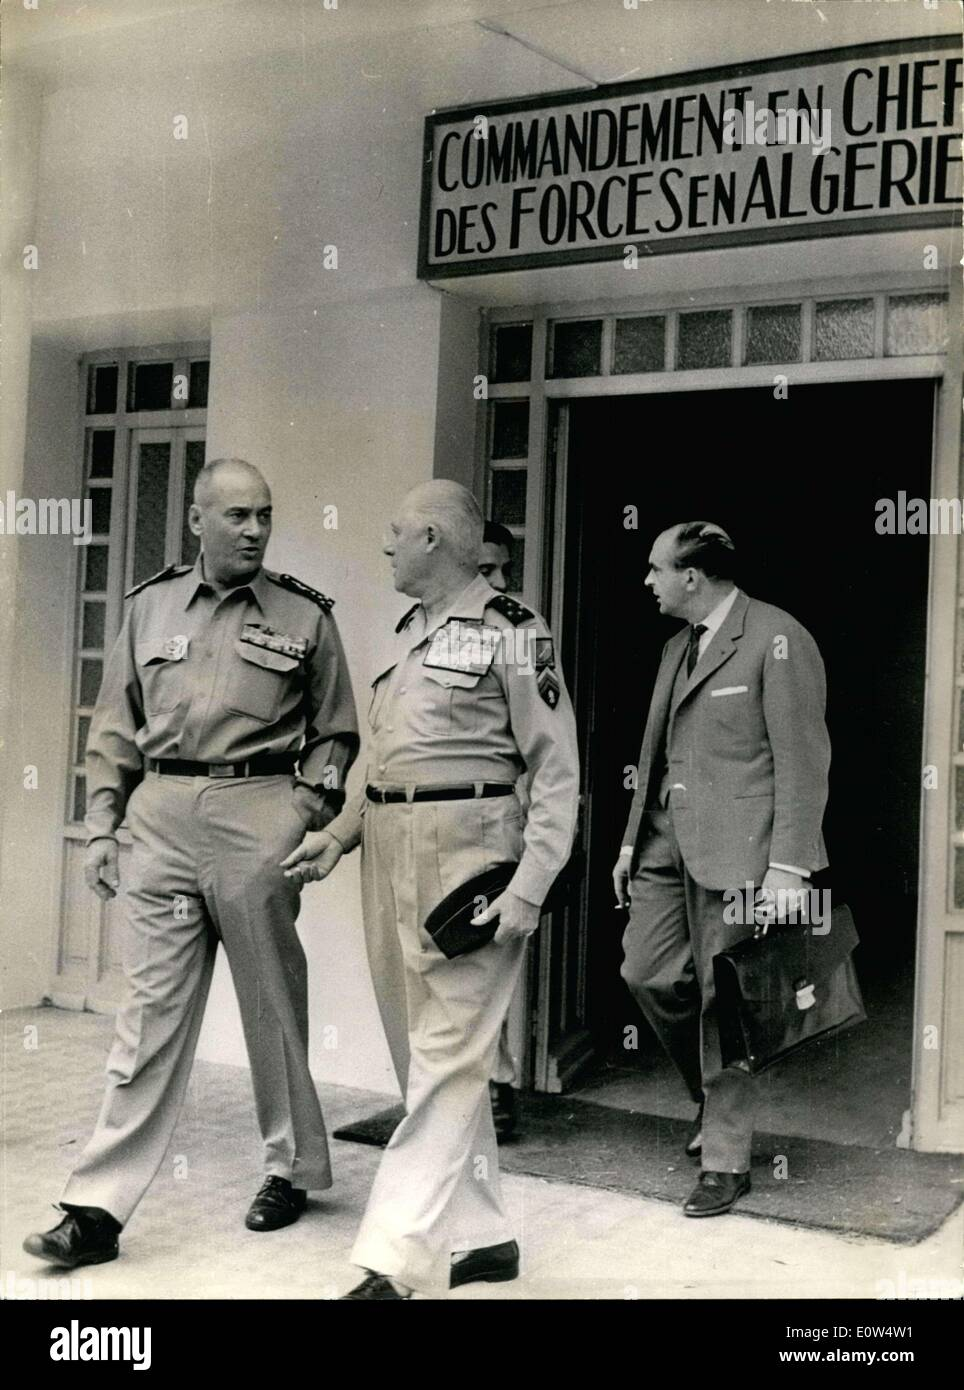 Apr. 27, 1961 - Generals Jouhaud and Salan (right), authors of the Puntsh military in Algeria, leave the command to the Algerians. - Stock Image